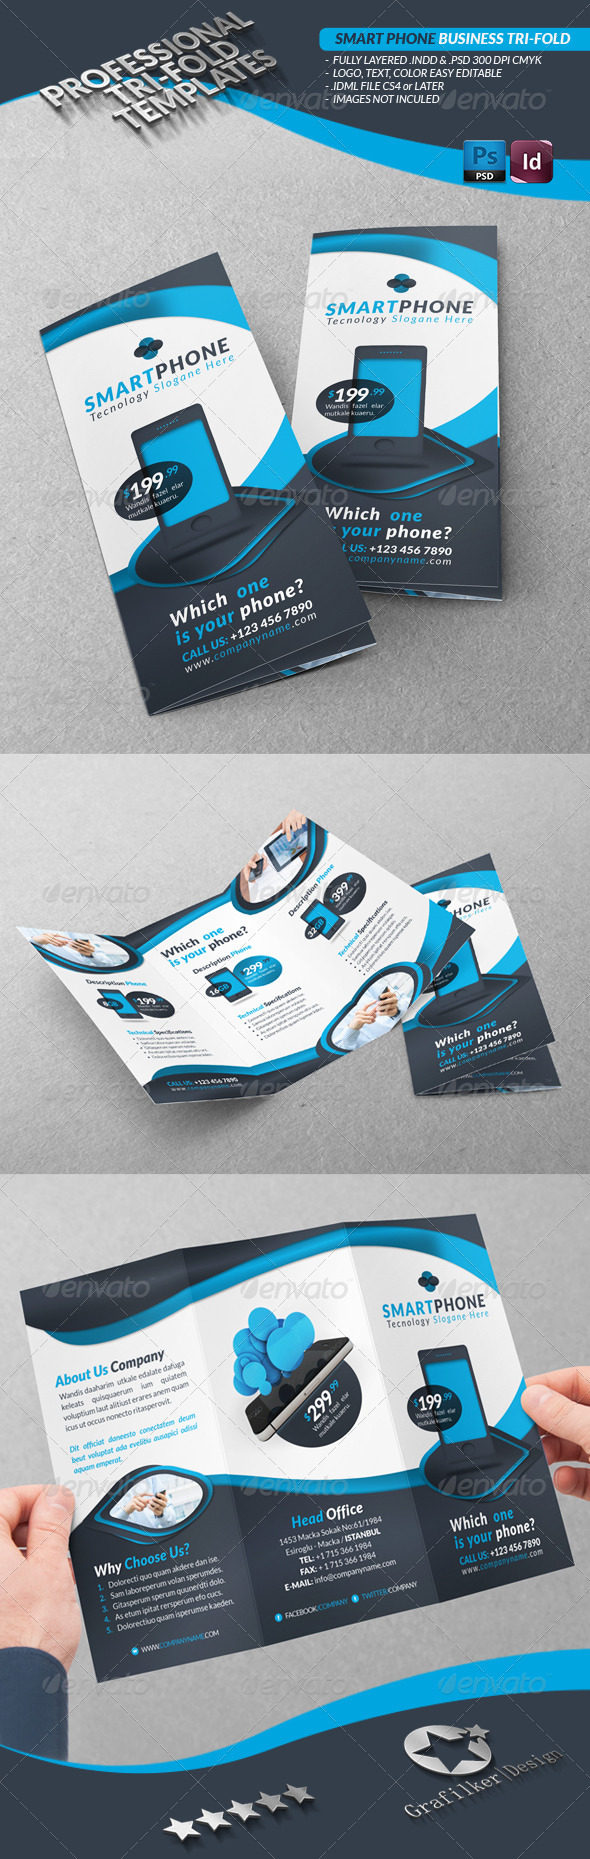 GraphicRiver Smart Phone Business Tri-Fold 3540214